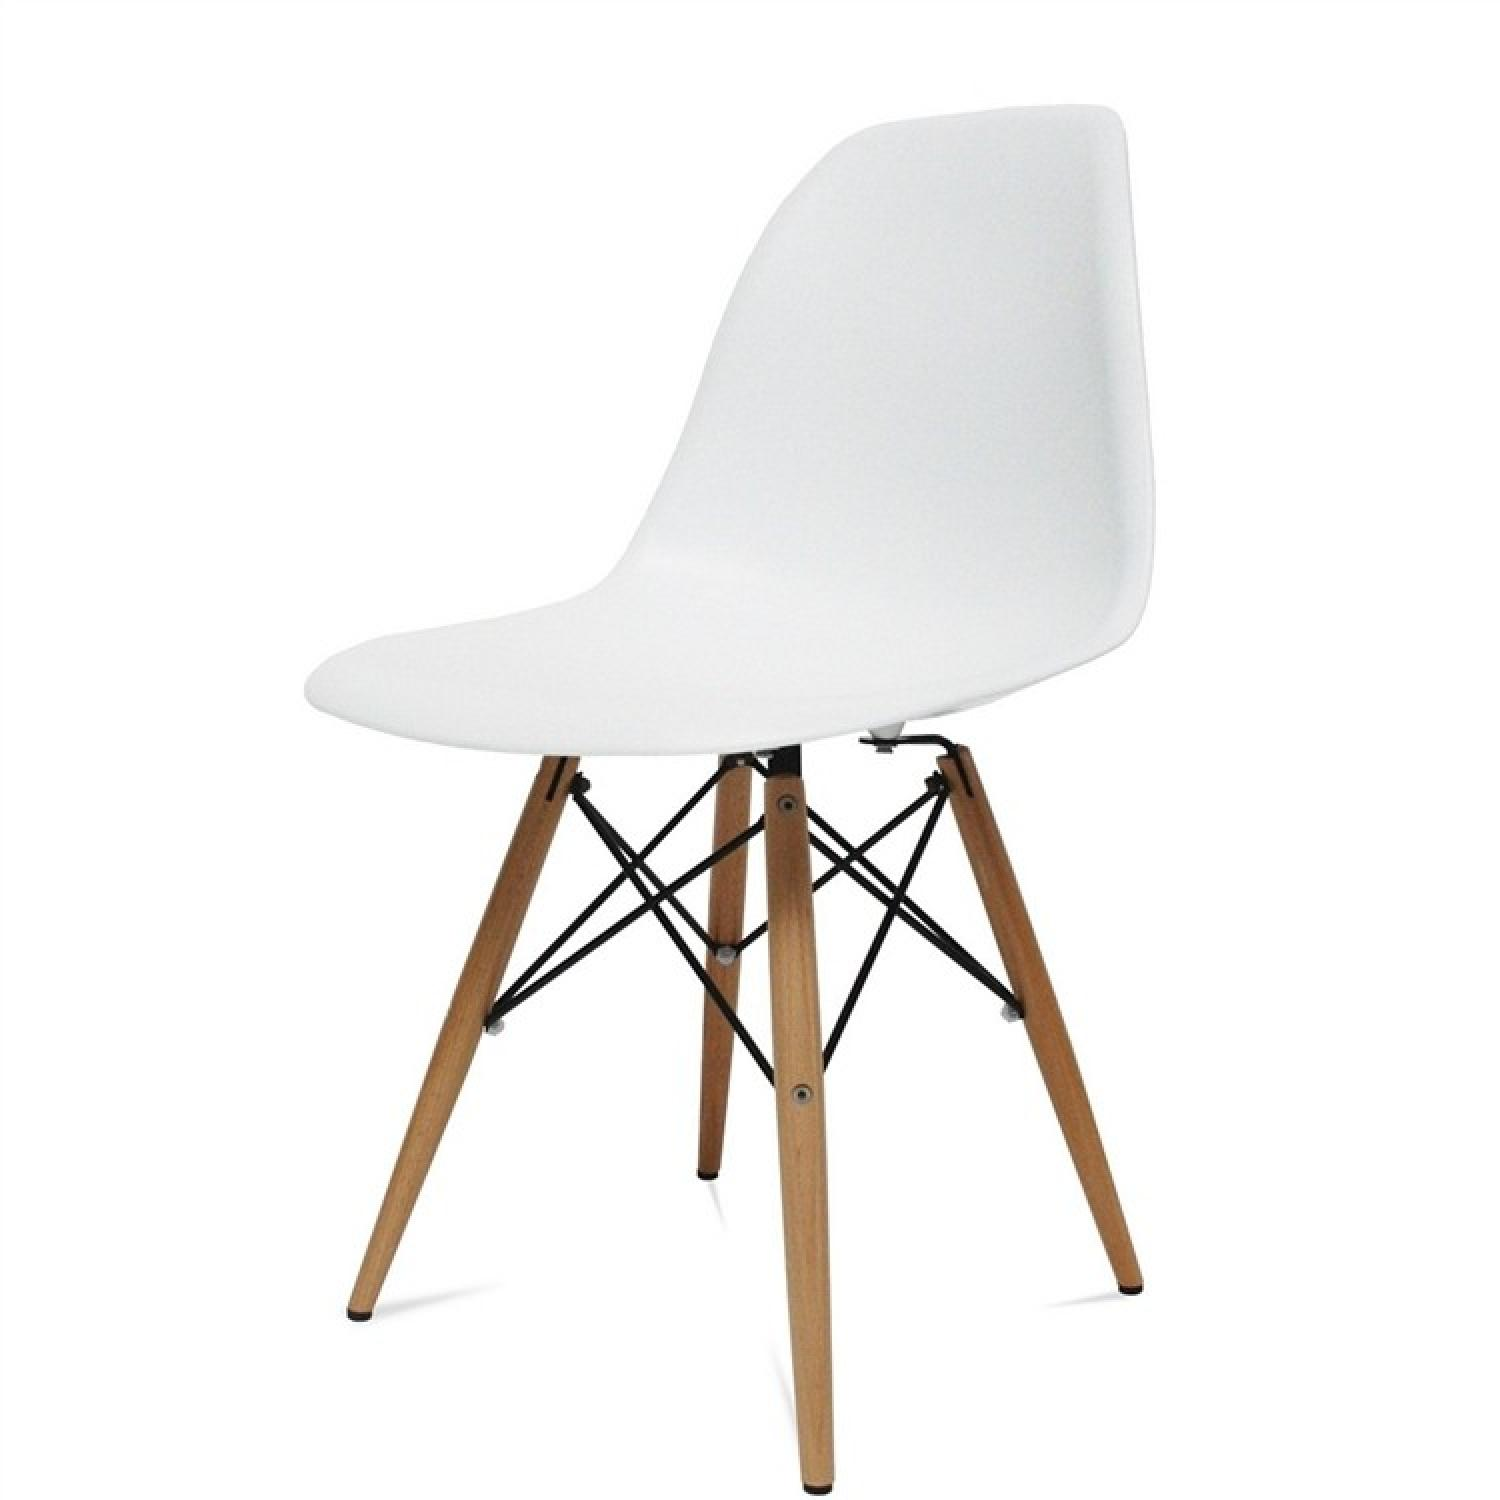 Classic Retro Style White Dining Chairs w/ Wood Legs - image-3